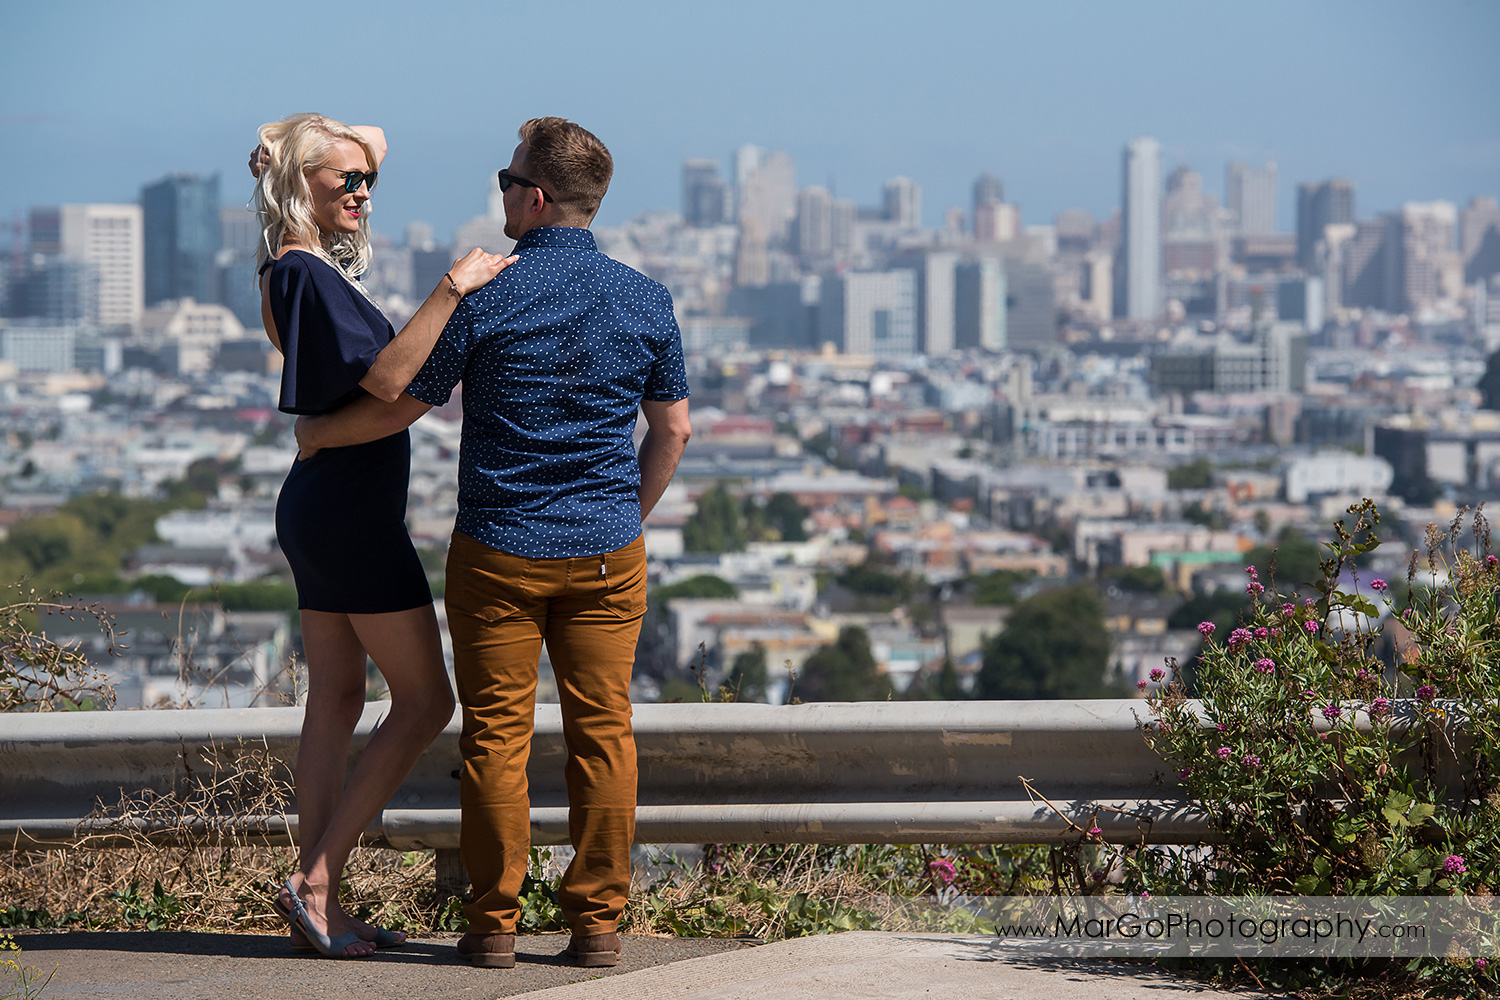 engagement session at Bernal Heights in San Francisco - cupule looking at each other with SF view